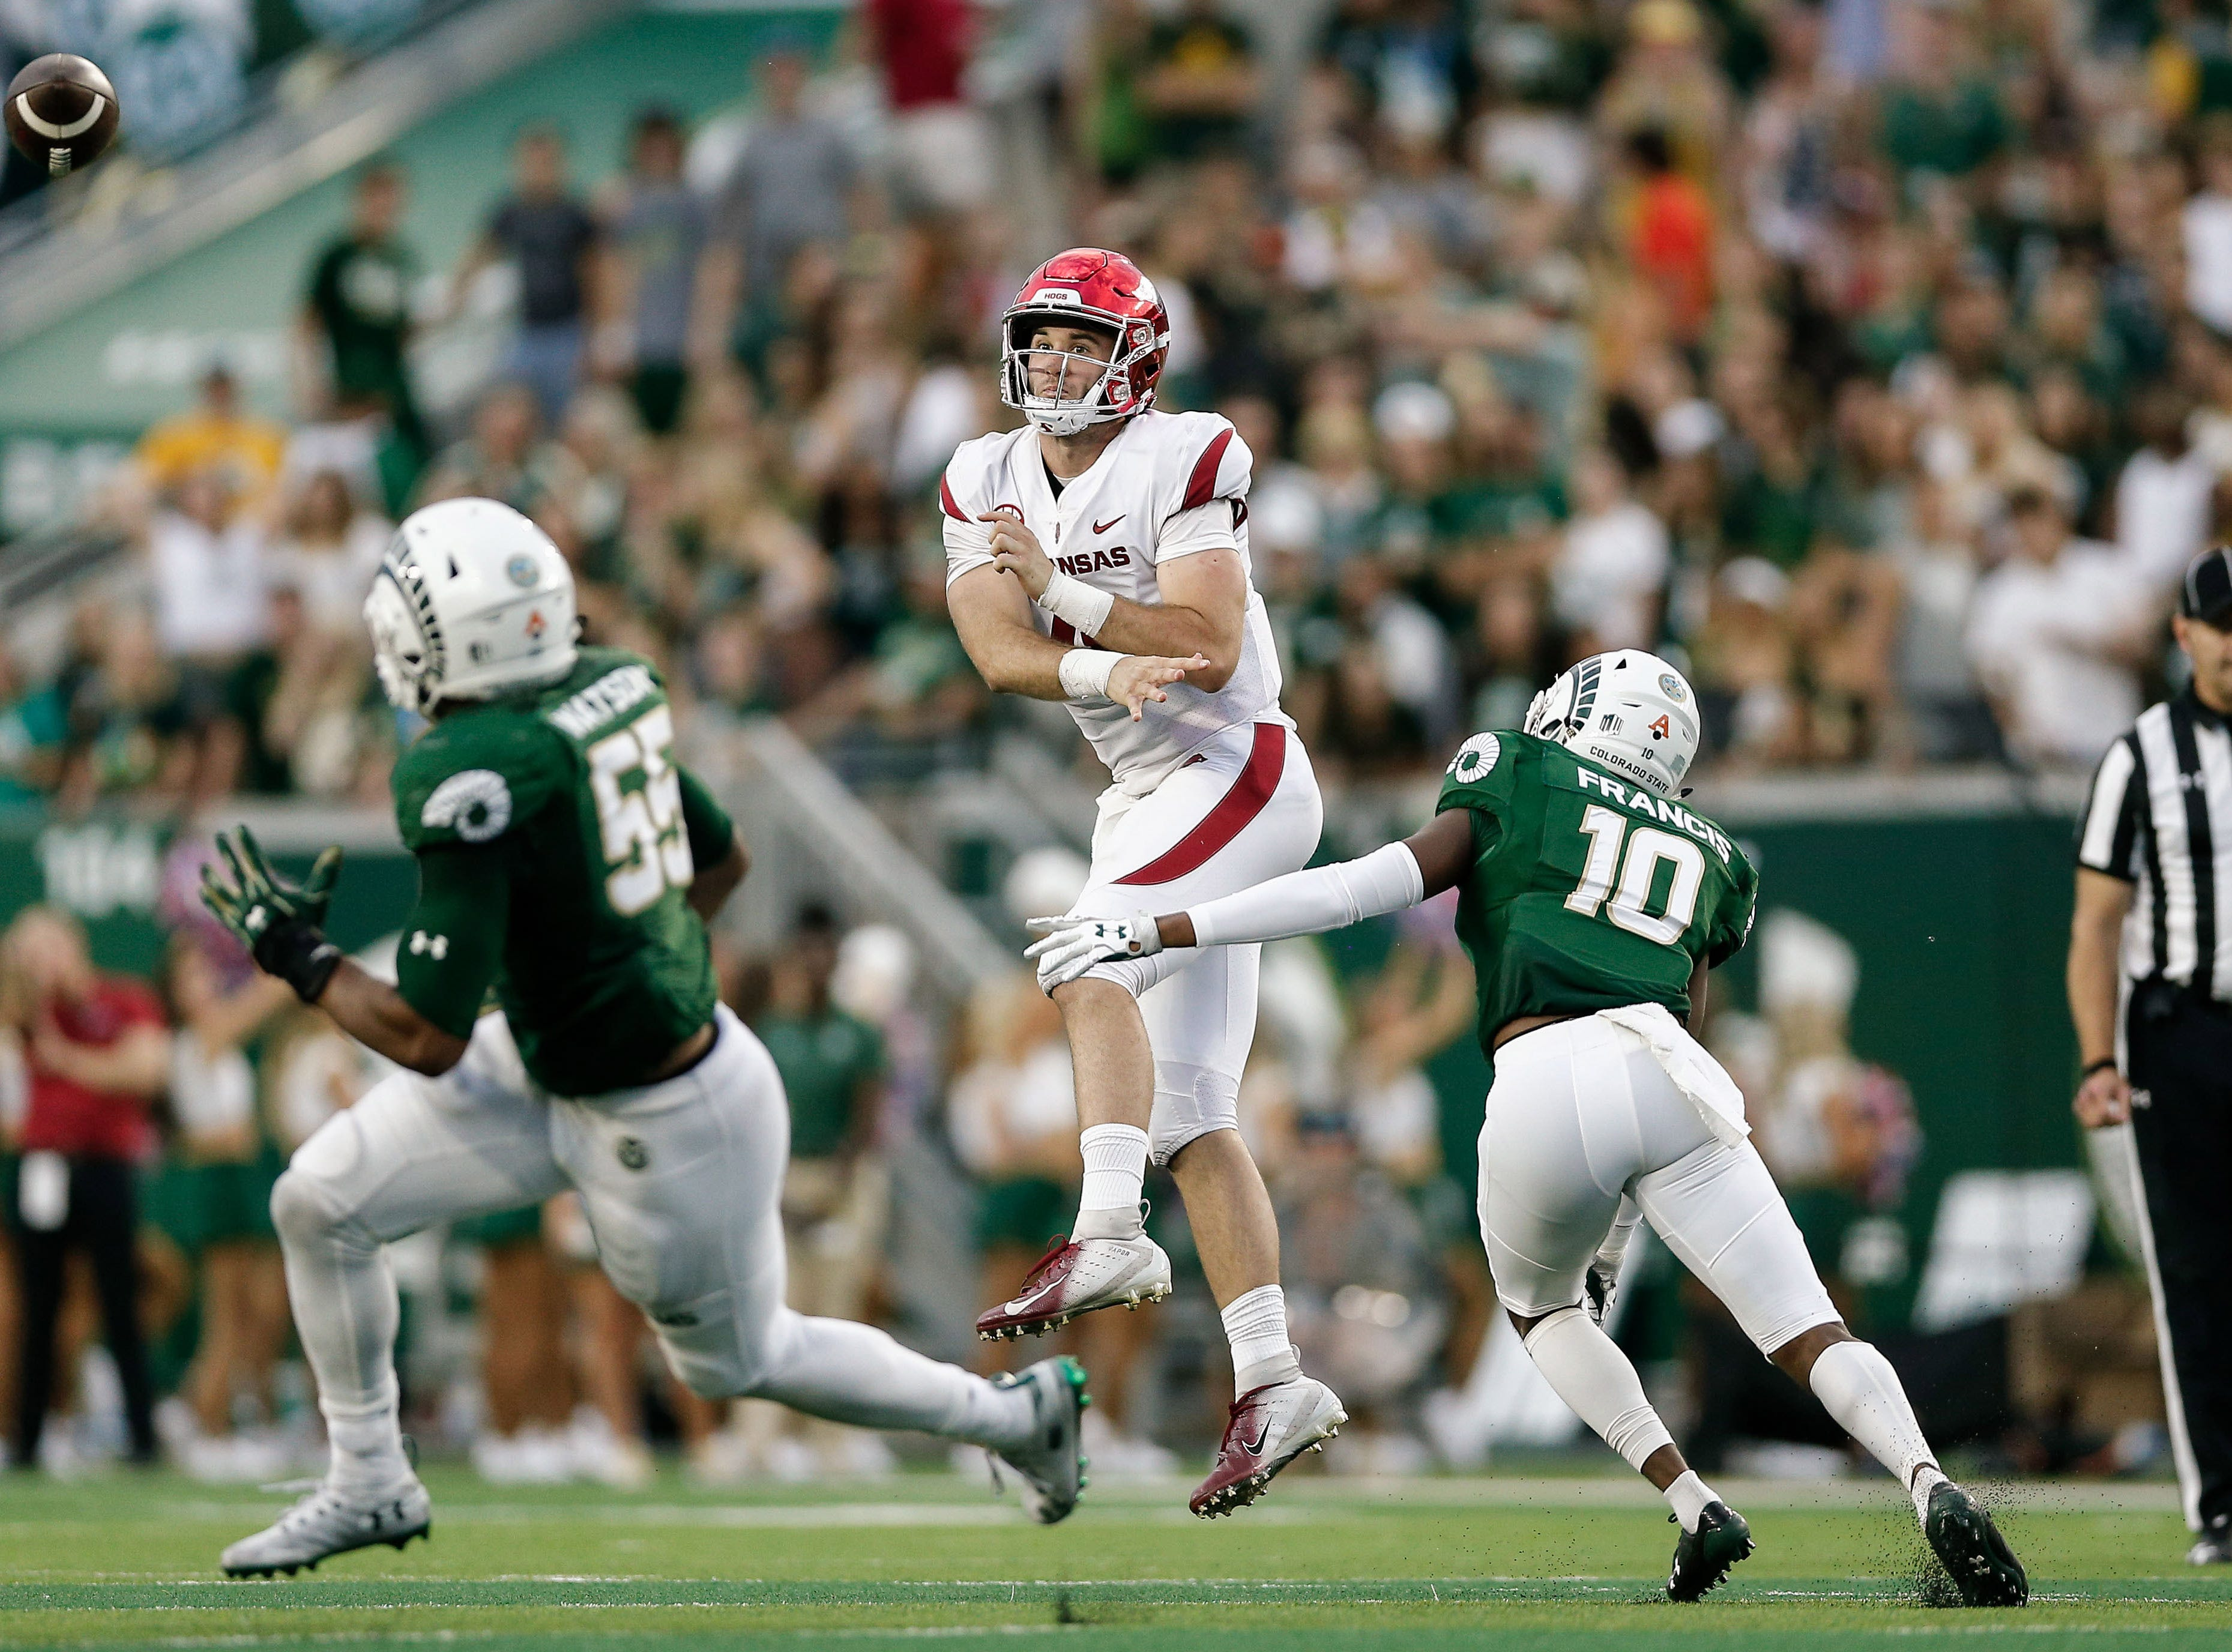 Arkansas Razorbacks quarterback Ty Storey (4) passes the ball under pressure from Colorado State Rams safety Tywan Francis (10) as linebacker Josh Watson (55) defends in the second quarter at Canvas Stadium.